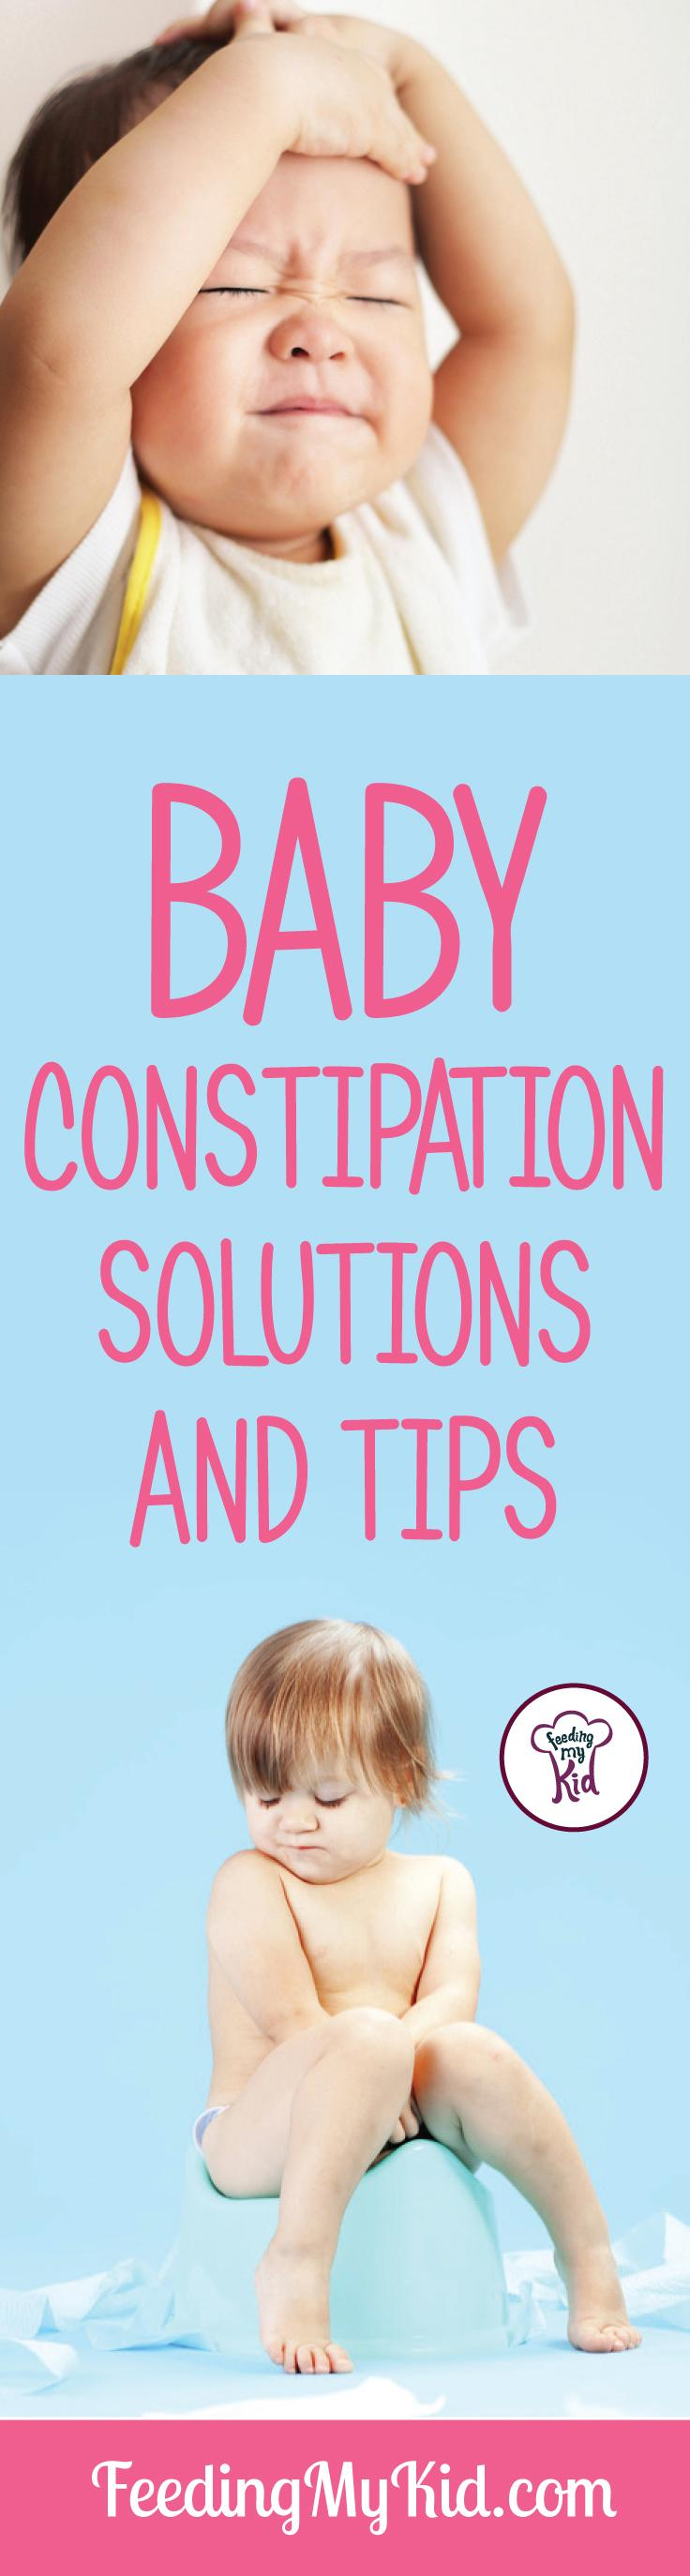 Try these great baby constipation tips. Learn how to relieve the symptoms of constipation for your baby. He'll be better in no time!